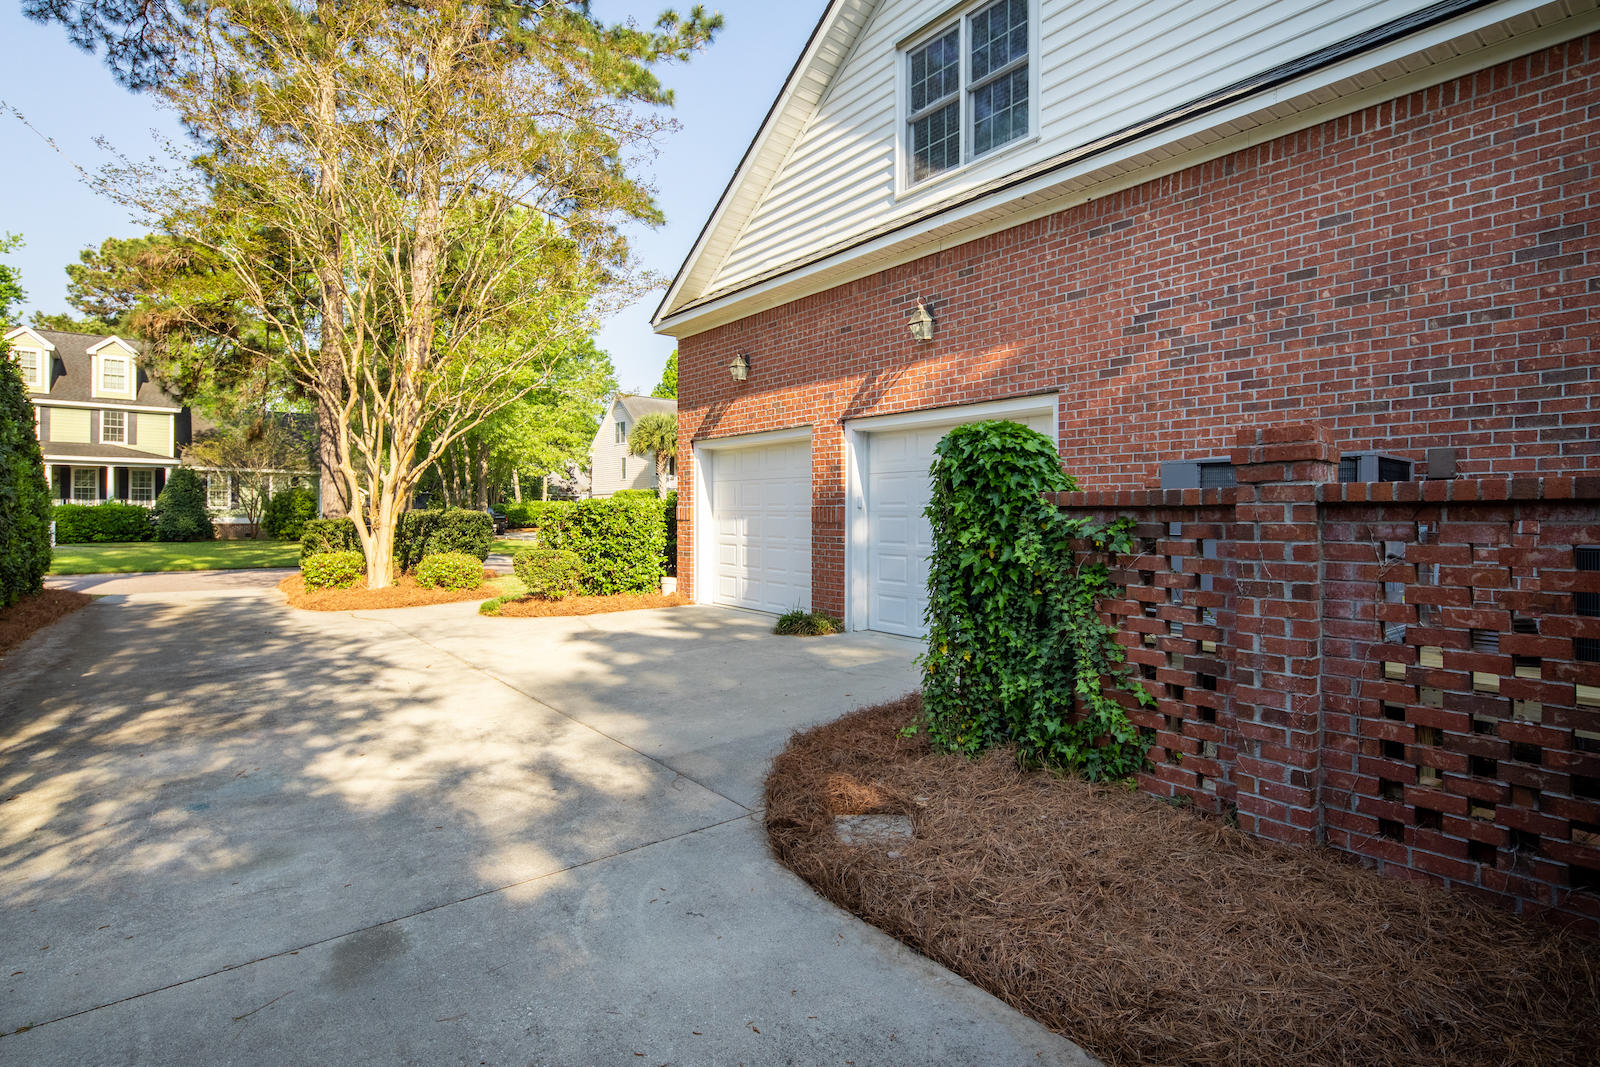 Stiles Point Plantation Homes For Sale - 742 Whispering Marsh, Charleston, SC - 6